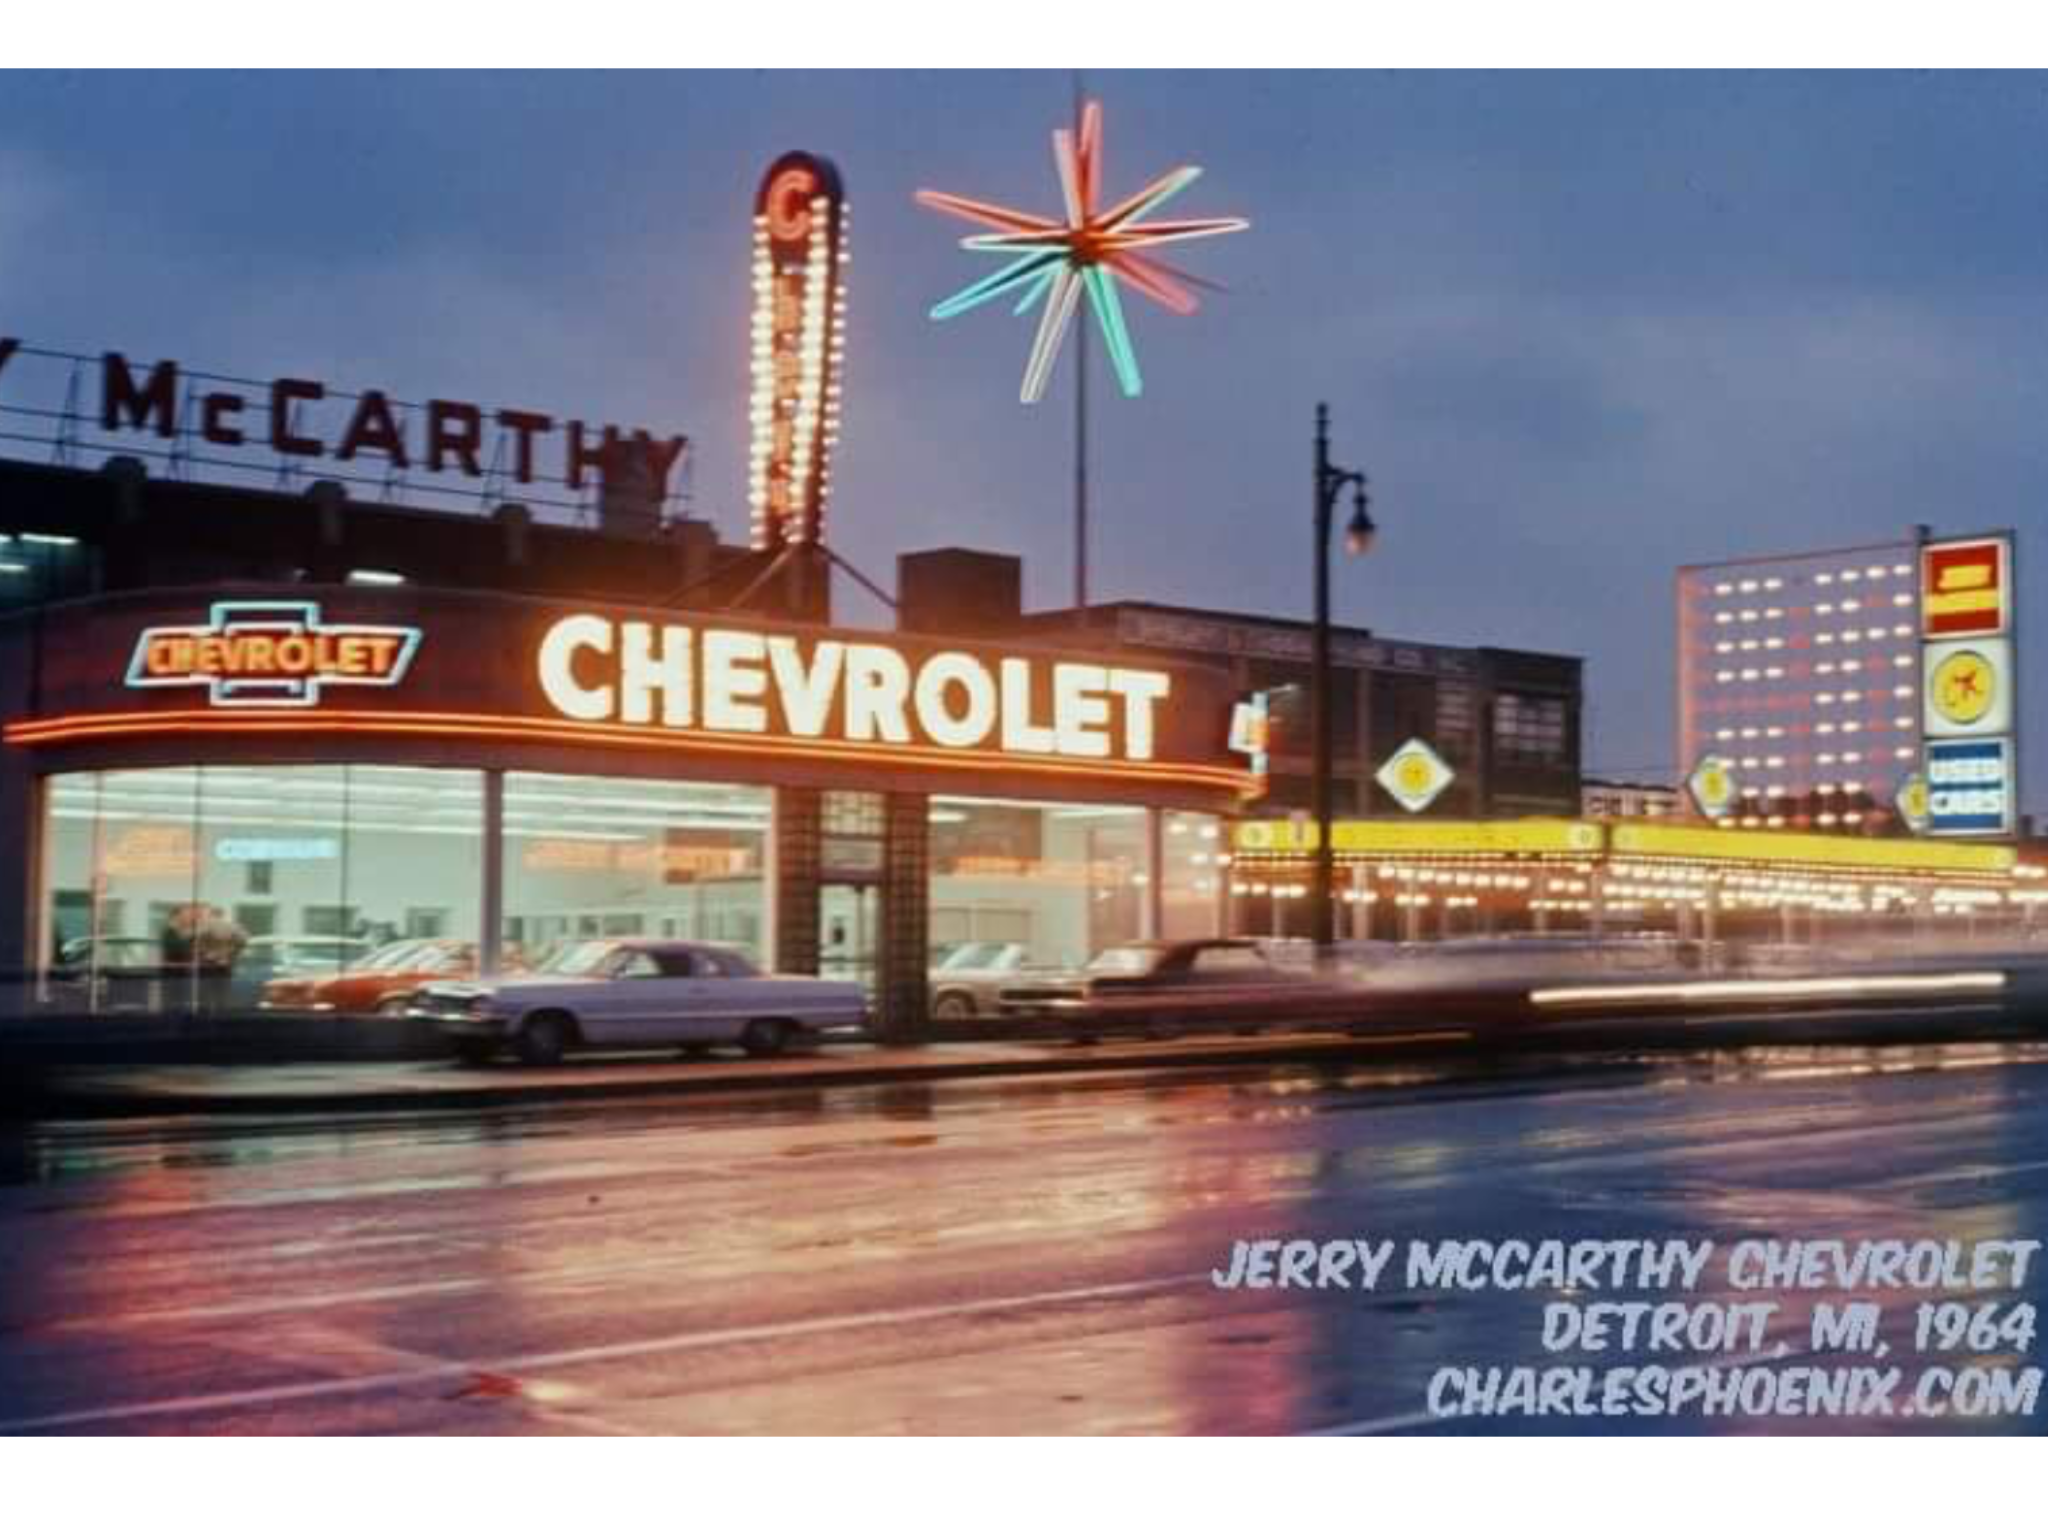 1964 Jerry Mccarthy Chevrolet Dealership Detroit Michigan Chevrolet Dealership Chevrolet Dealership